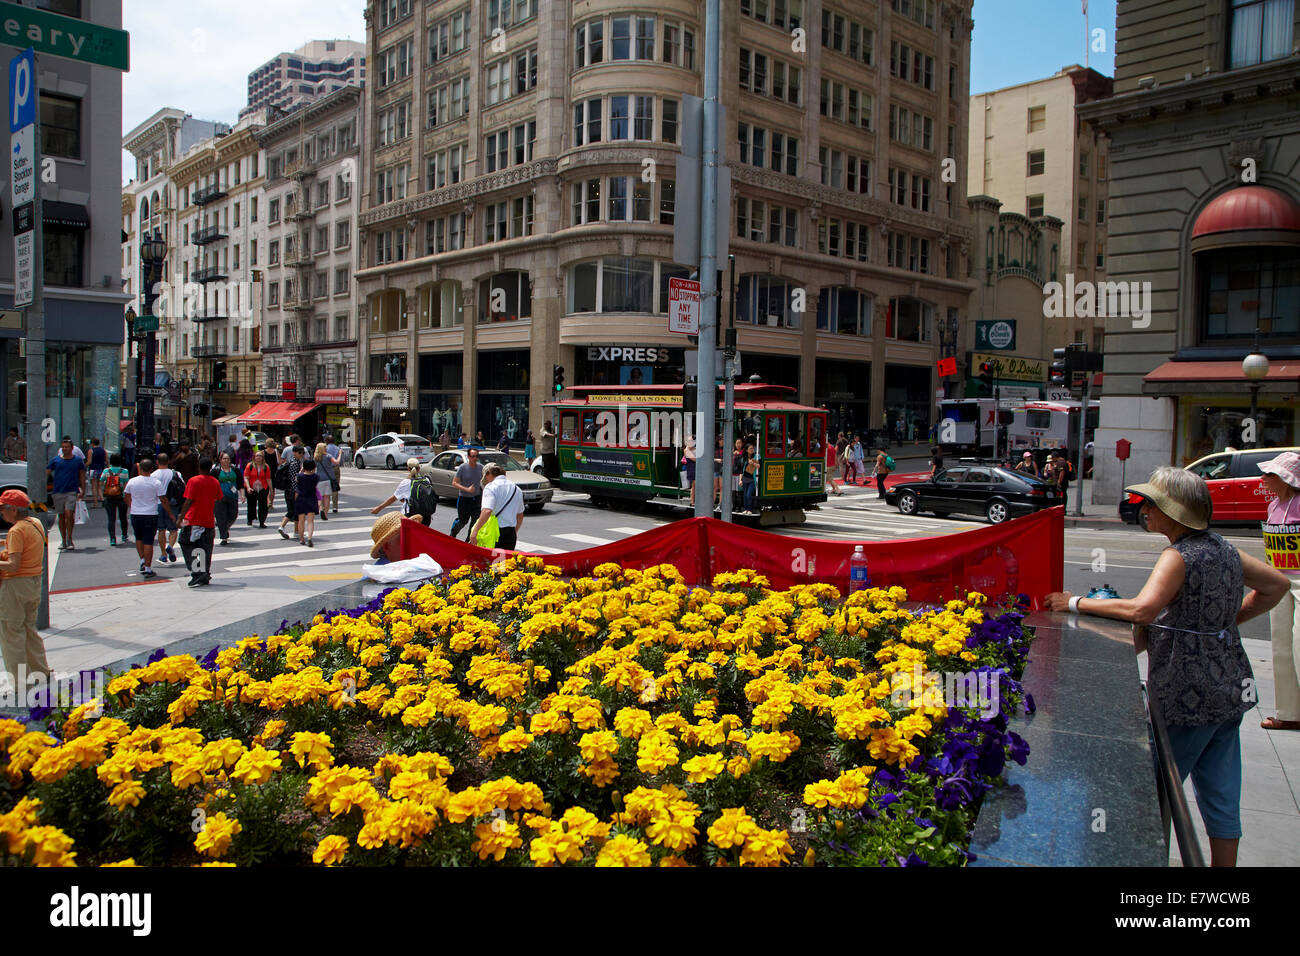 Flower Garden And Cable Car, Union Square, San Francisco, California, USA